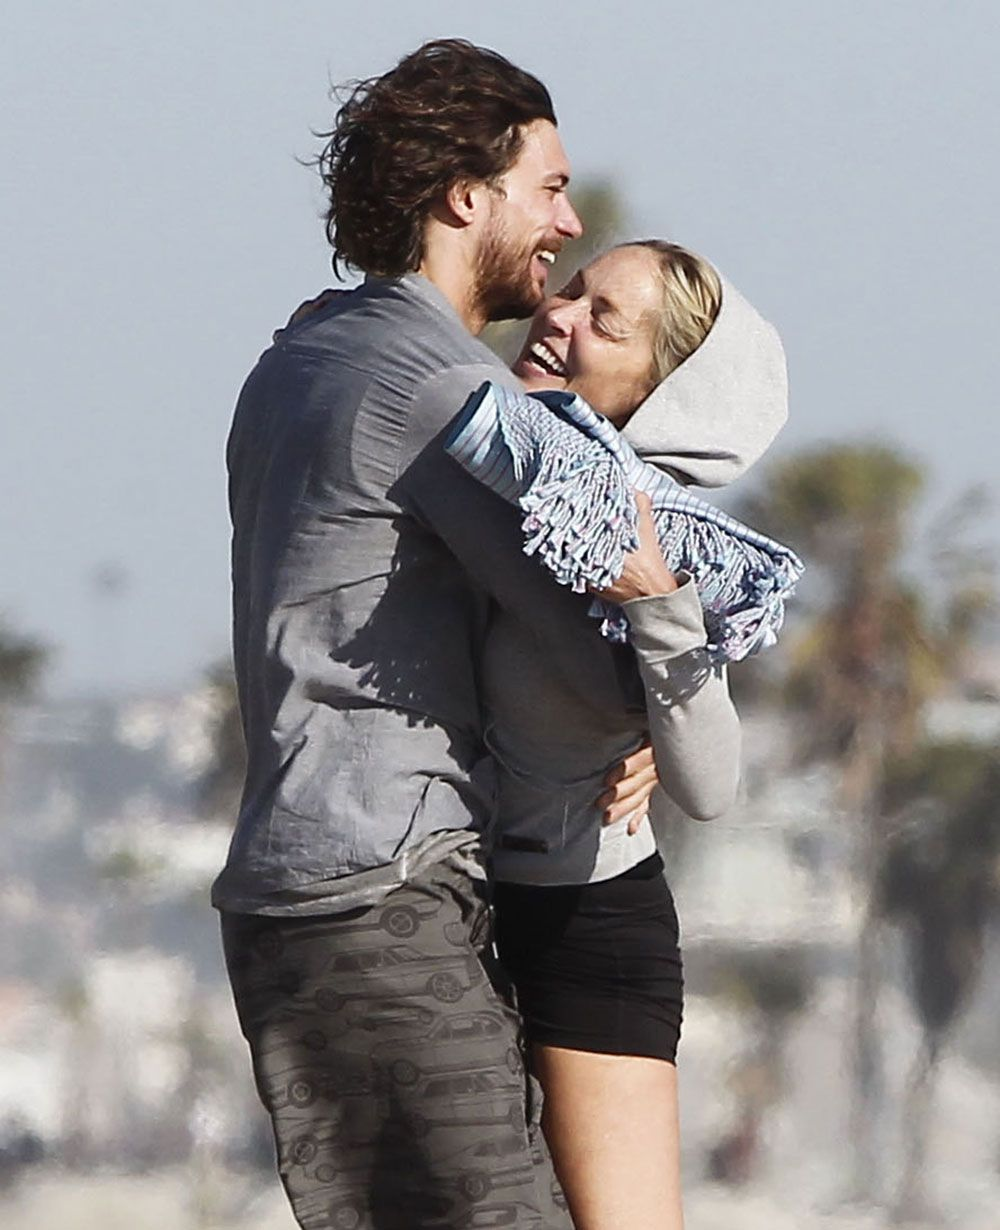 Sharon Stone and her new boyfriend, a 27 year-old model from Argentina named Martin Mica   Old